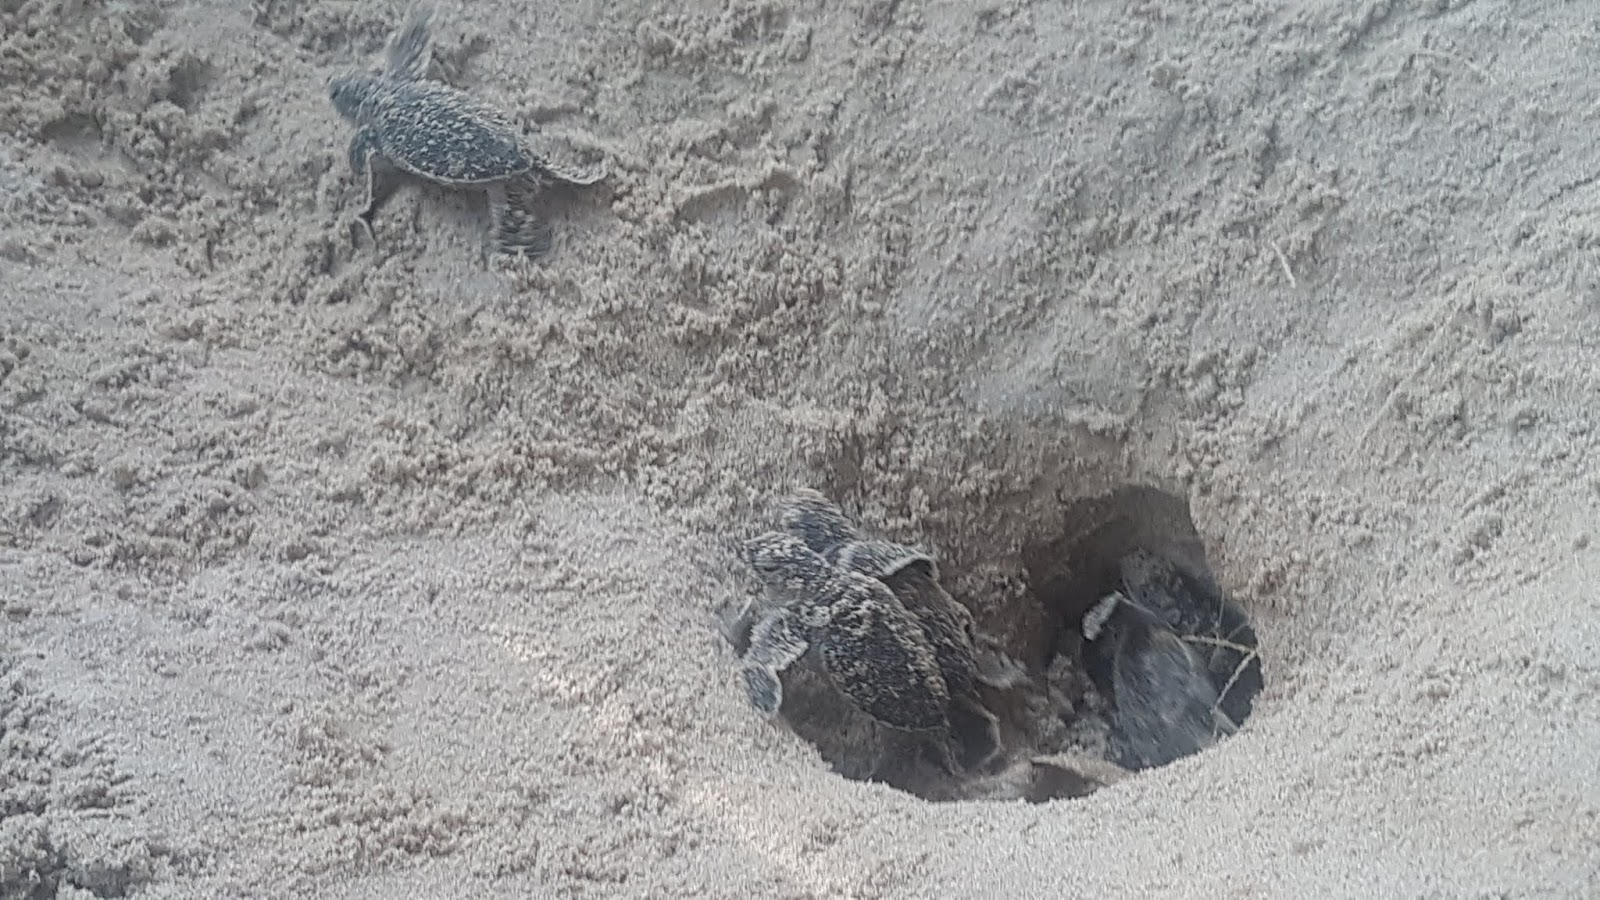 Releasing baby turtles in Cherating | Ummi Goes Where?